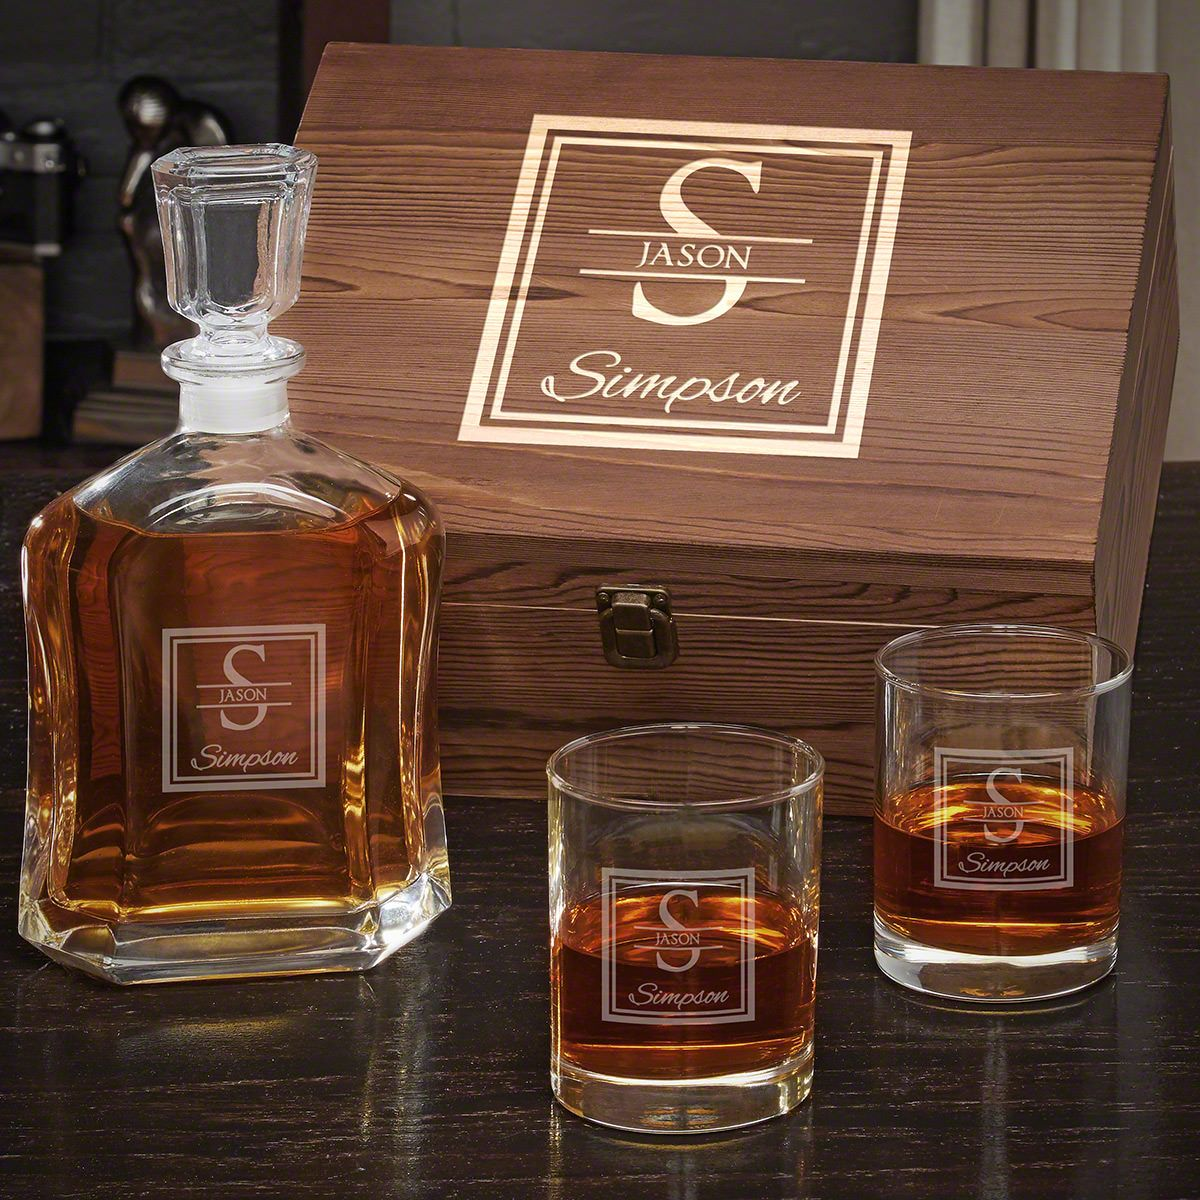 Oakhill Engraved Whiskey Argos Decanter Set with Eastham Glasses